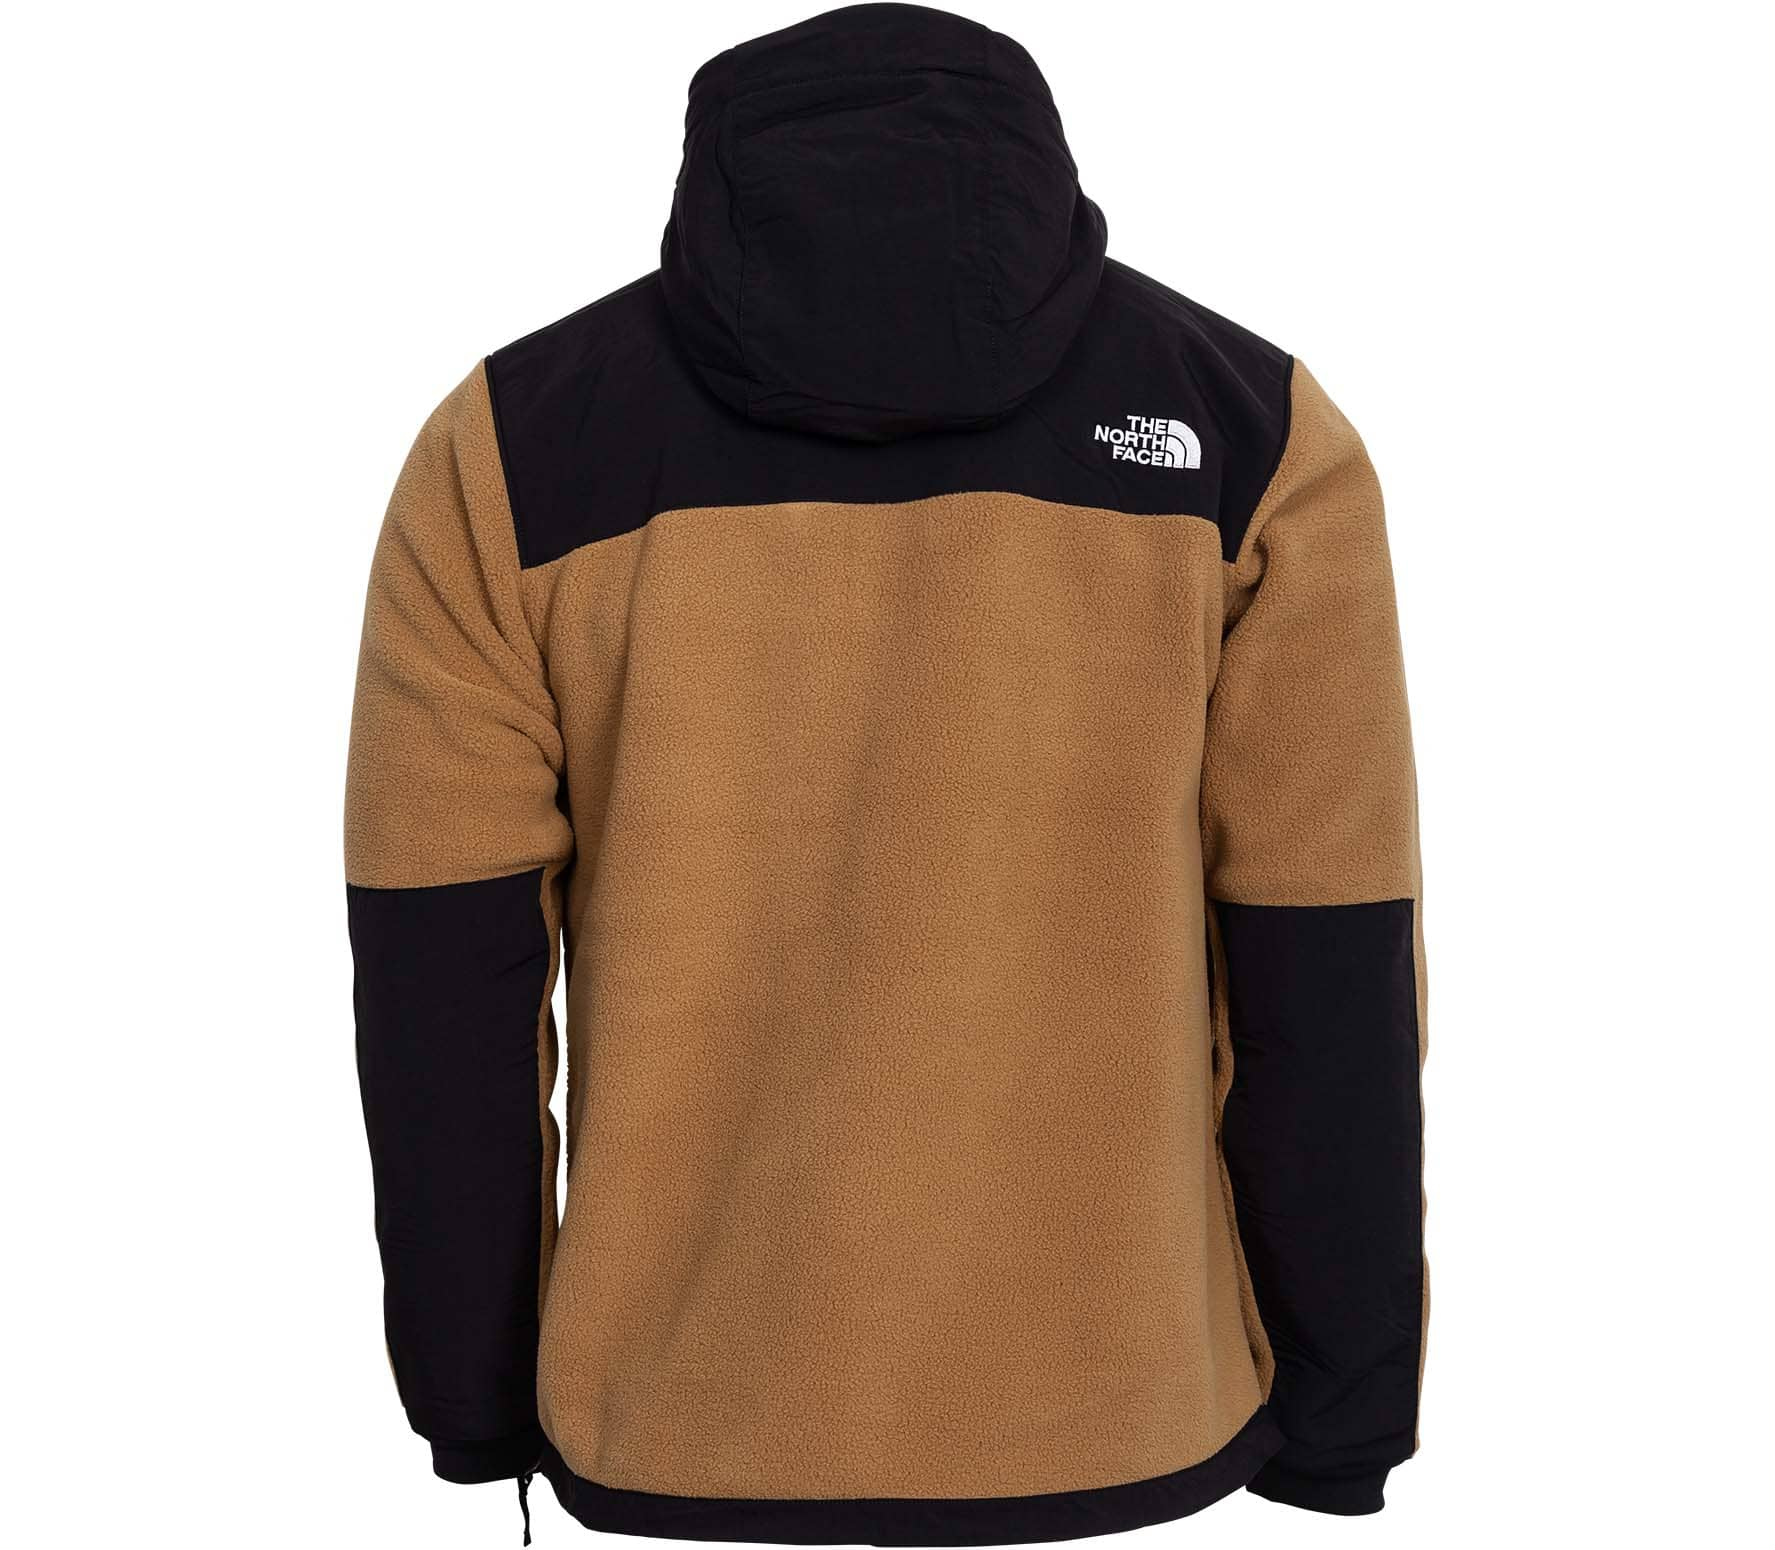 online store bd00b 0fa46 The North Face Denali 2 Herren Jacke braun